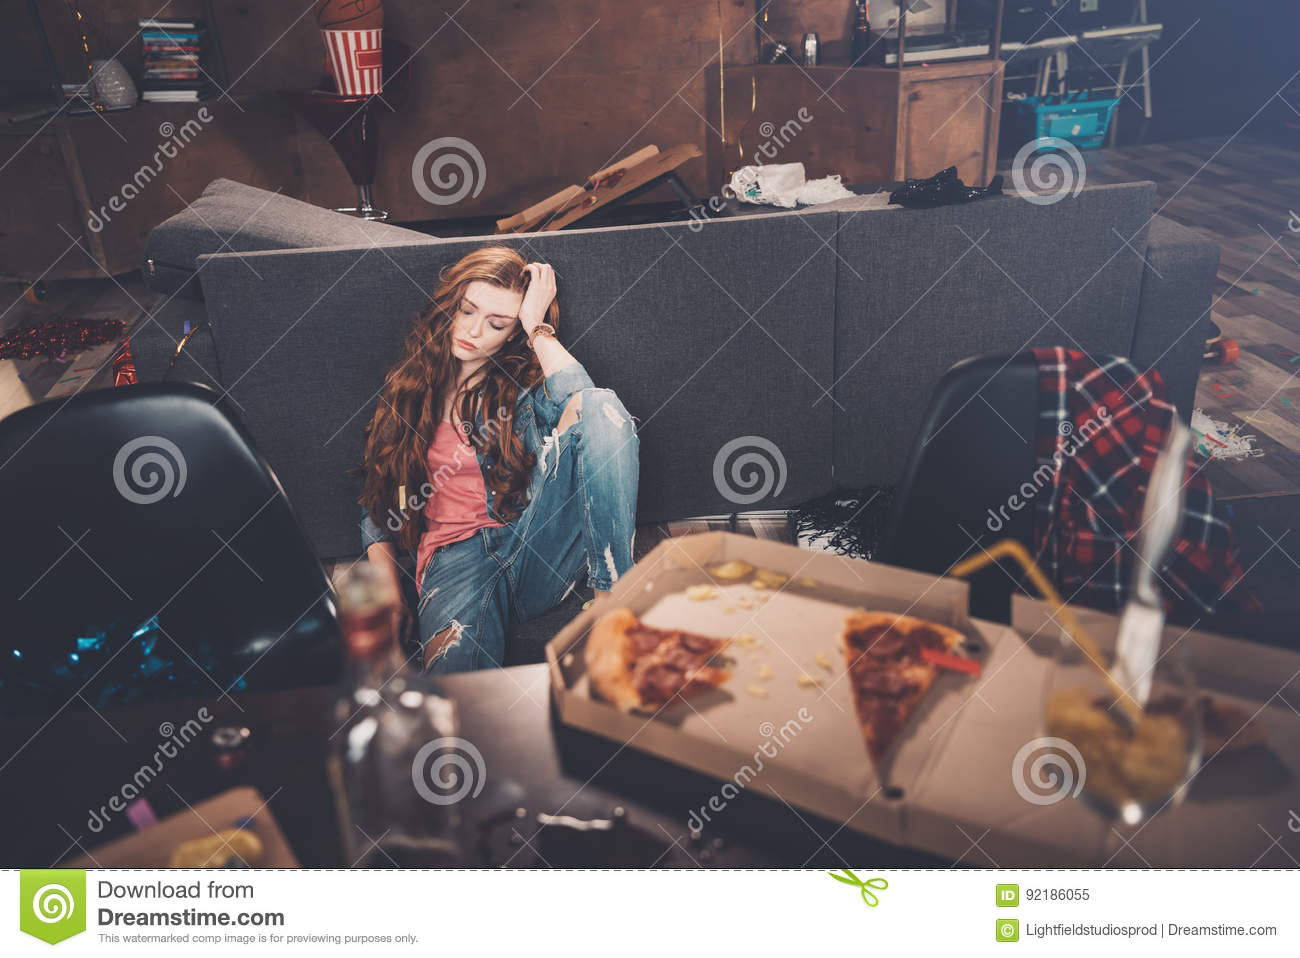 Young woman with closed eyes sitting on floor in messy room after party